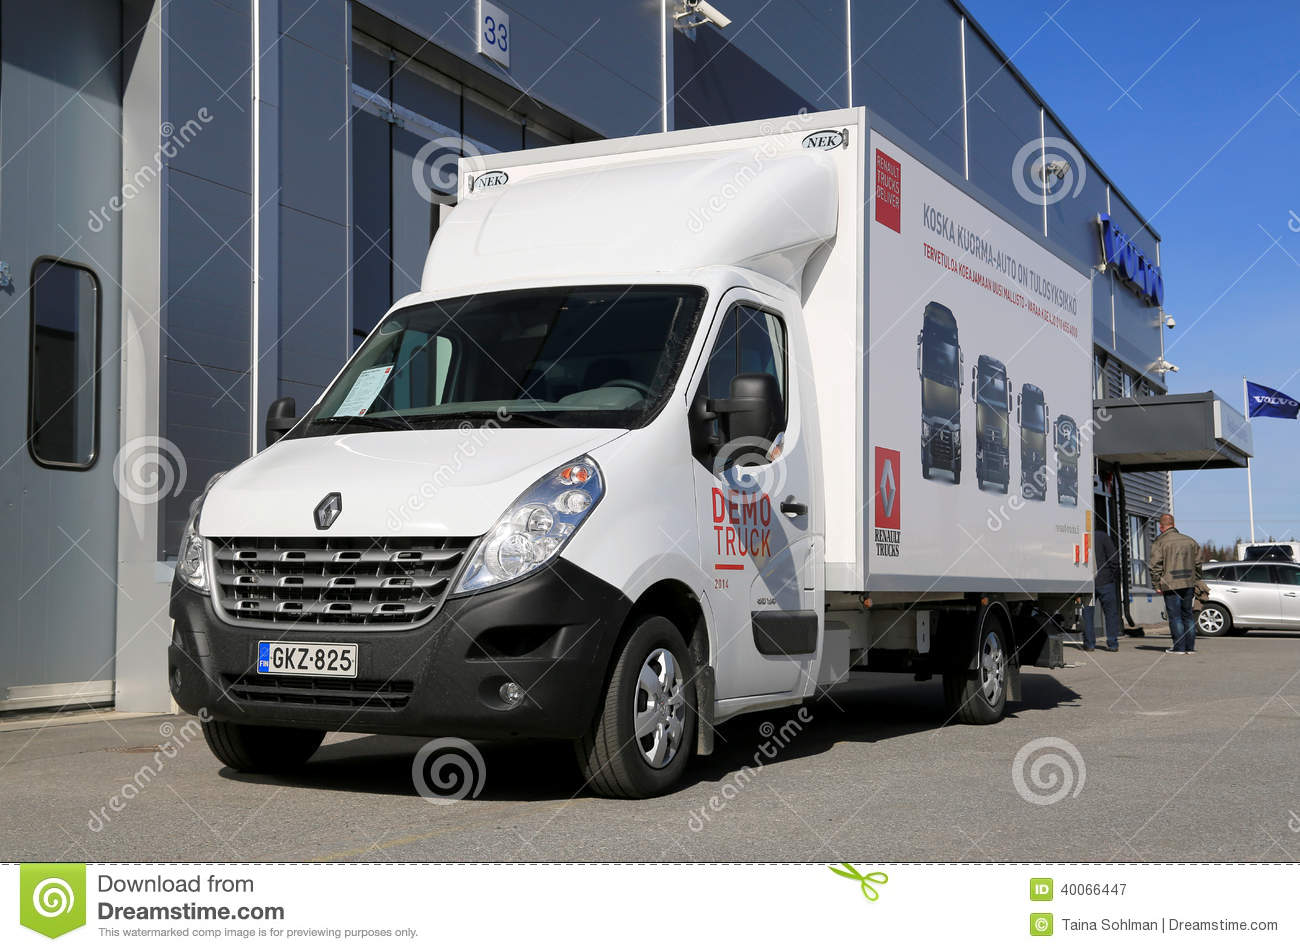 cami n de renault master 150 35 cc l3 fotograf a editorial imagen 40066447. Black Bedroom Furniture Sets. Home Design Ideas